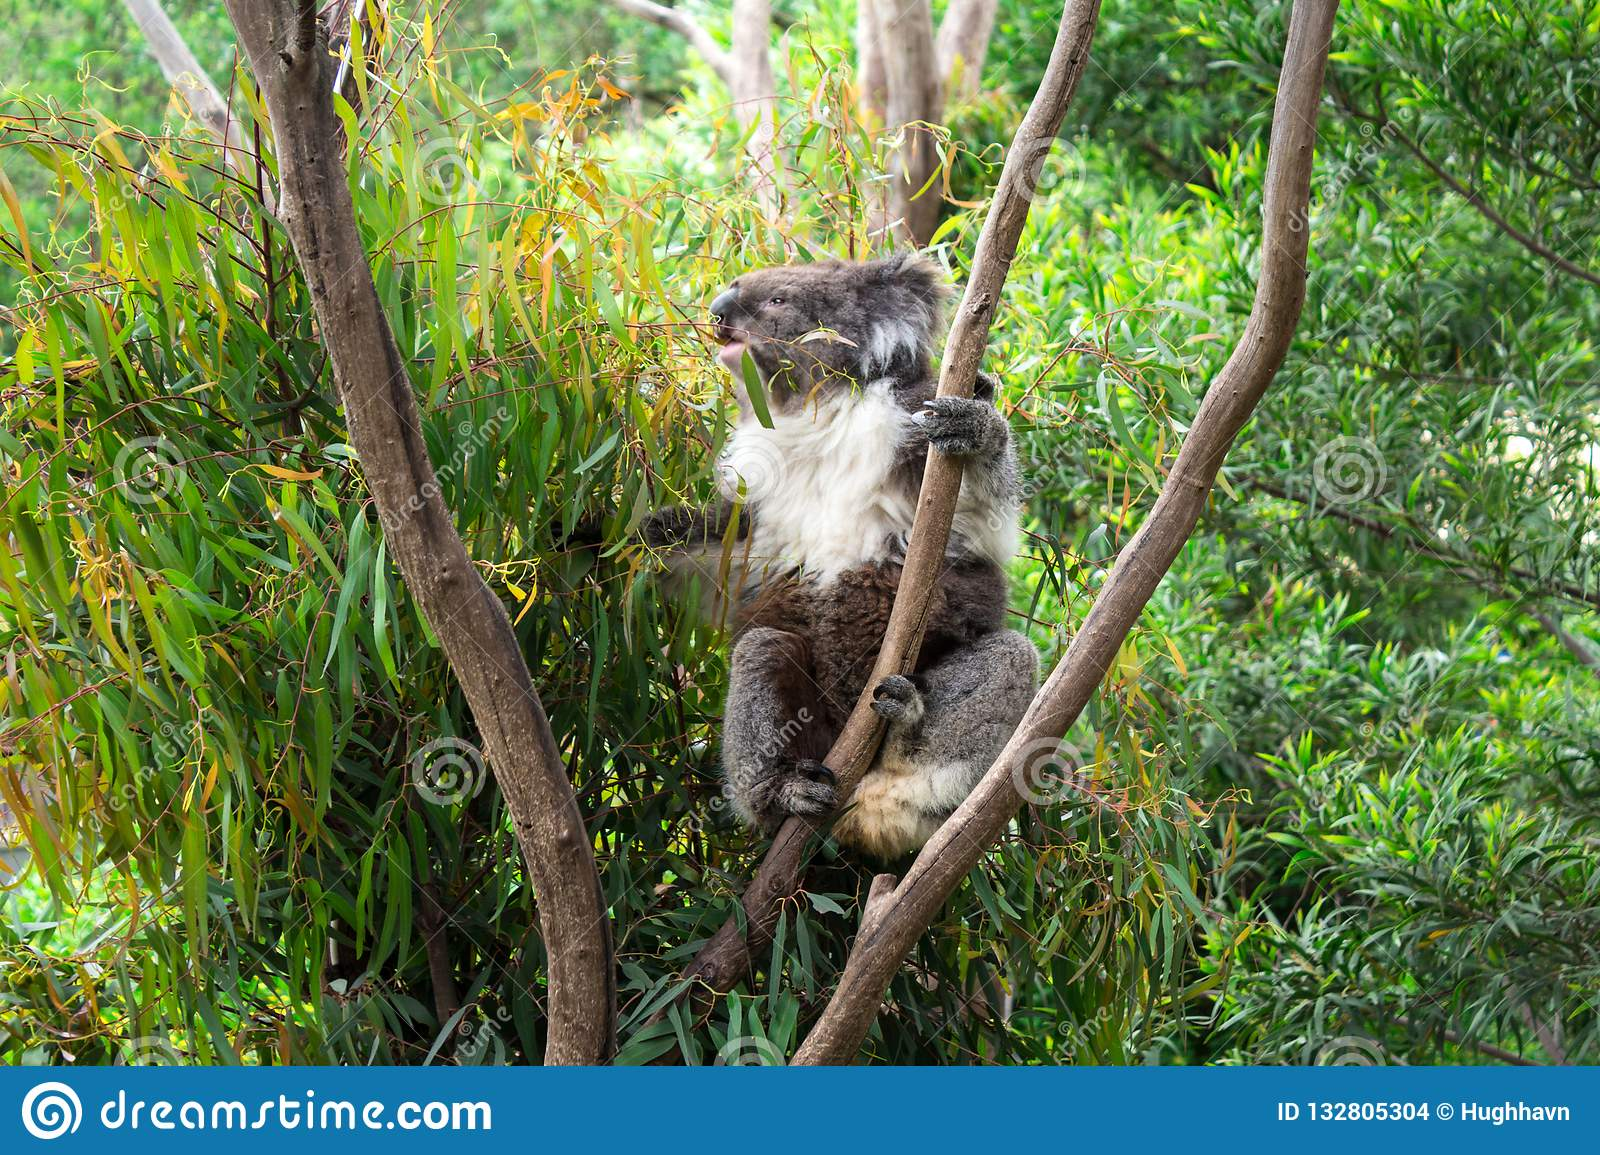 Koala Eating Gum Leaves on the Tree